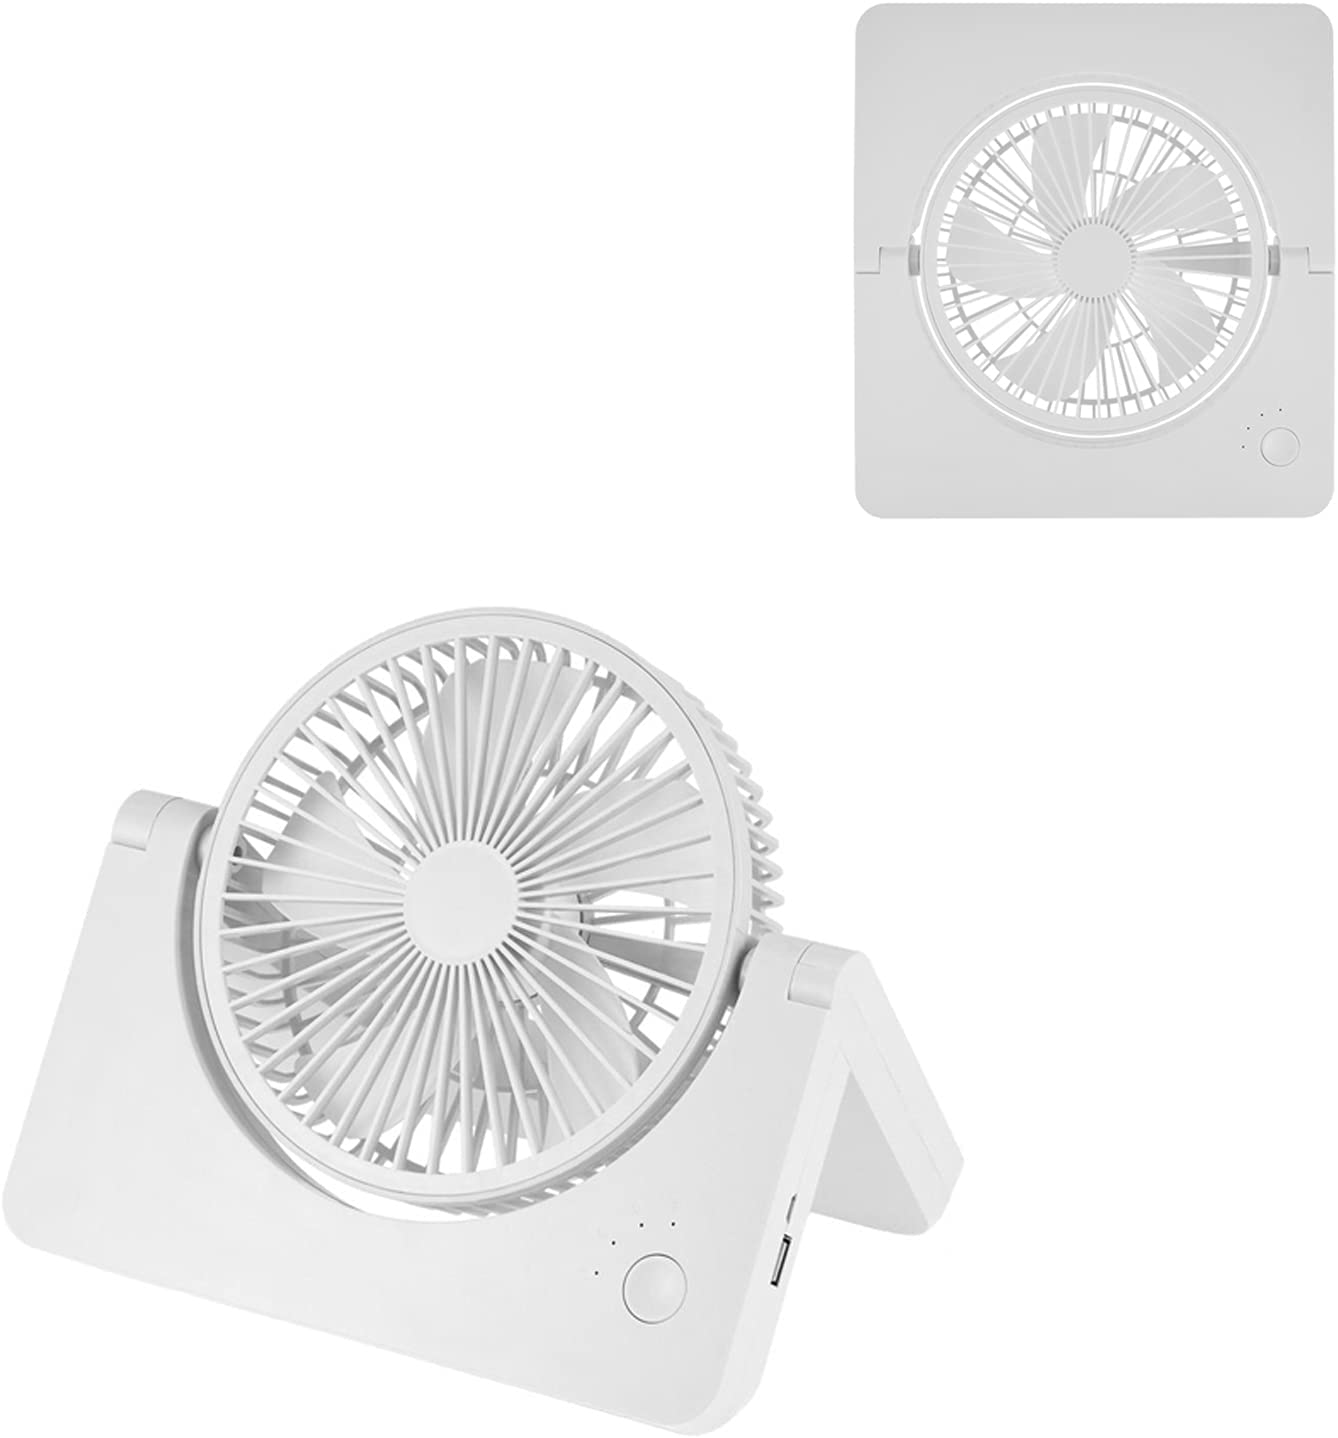 Folding Fans Max 41% OFF Portable rechargeable Cooler Seattle Mall fo mAh 4000 Speed 3